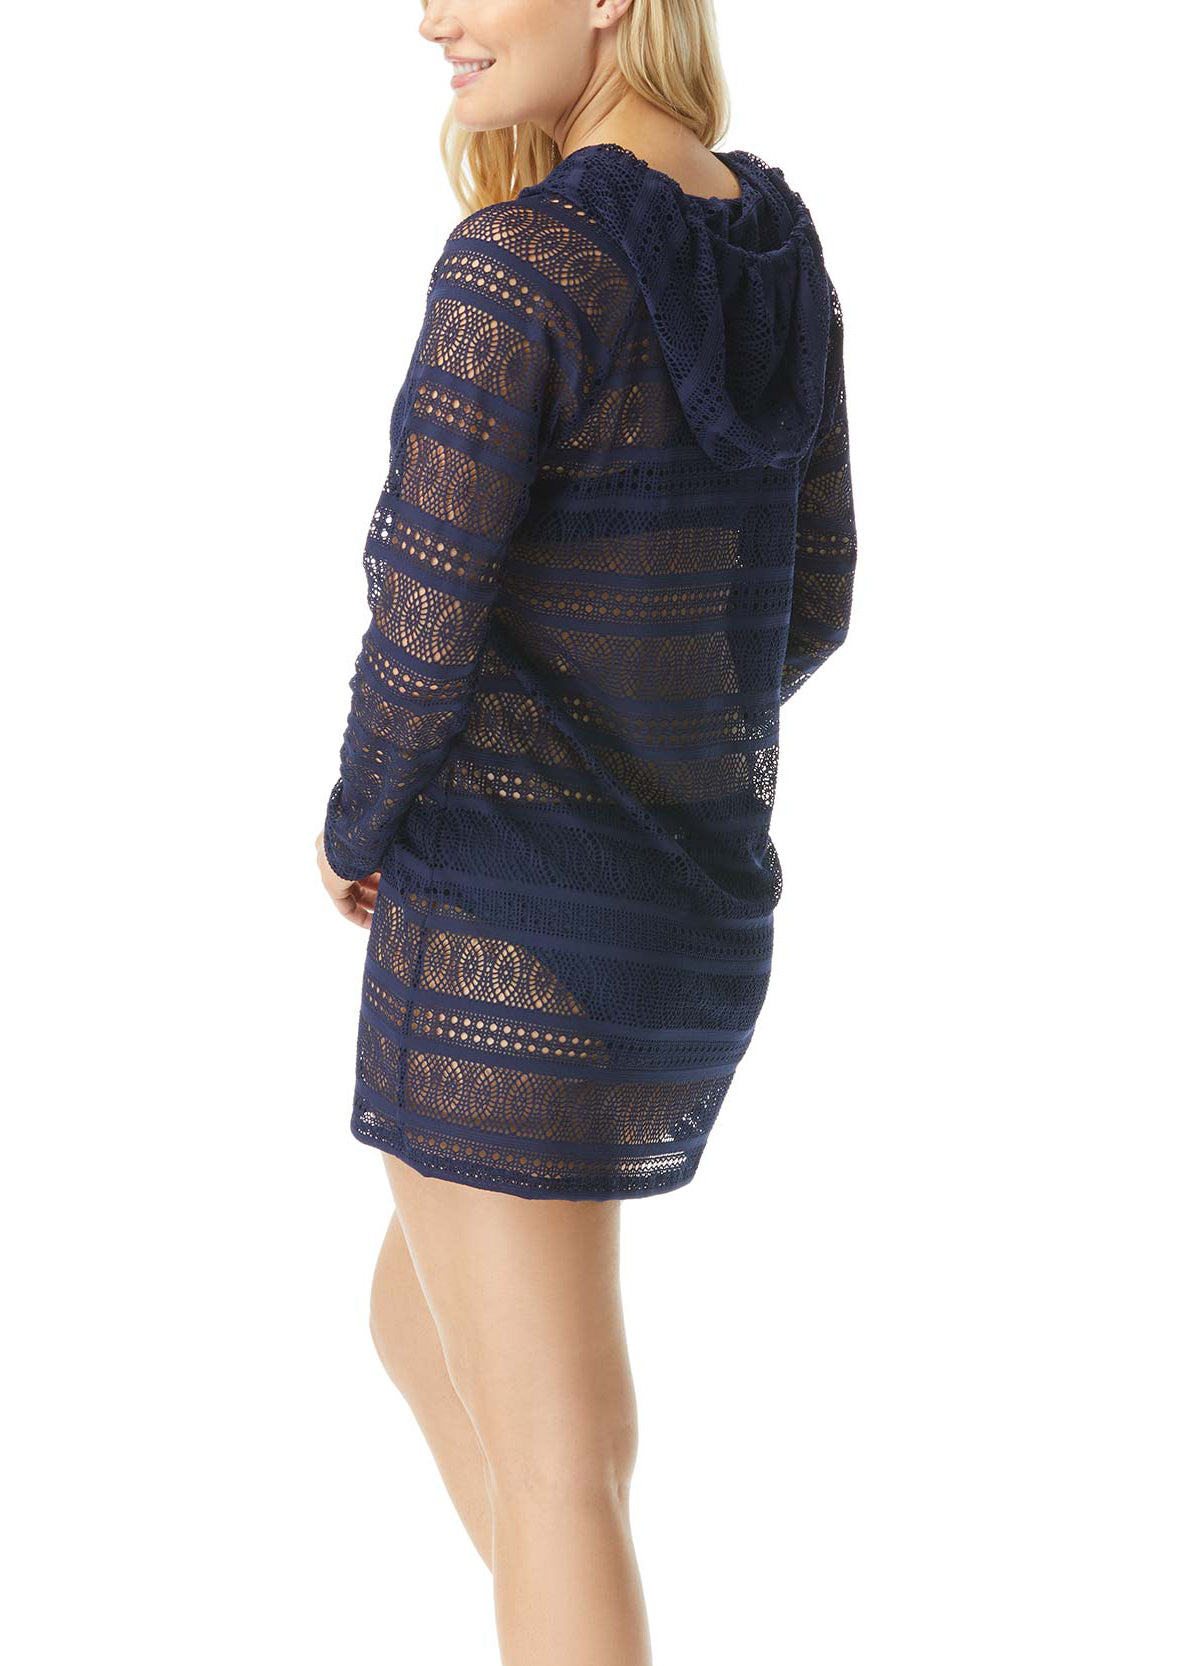 2021 Beach House Crochet and Go Indra Lace Hooded Zip-Up Cover Up